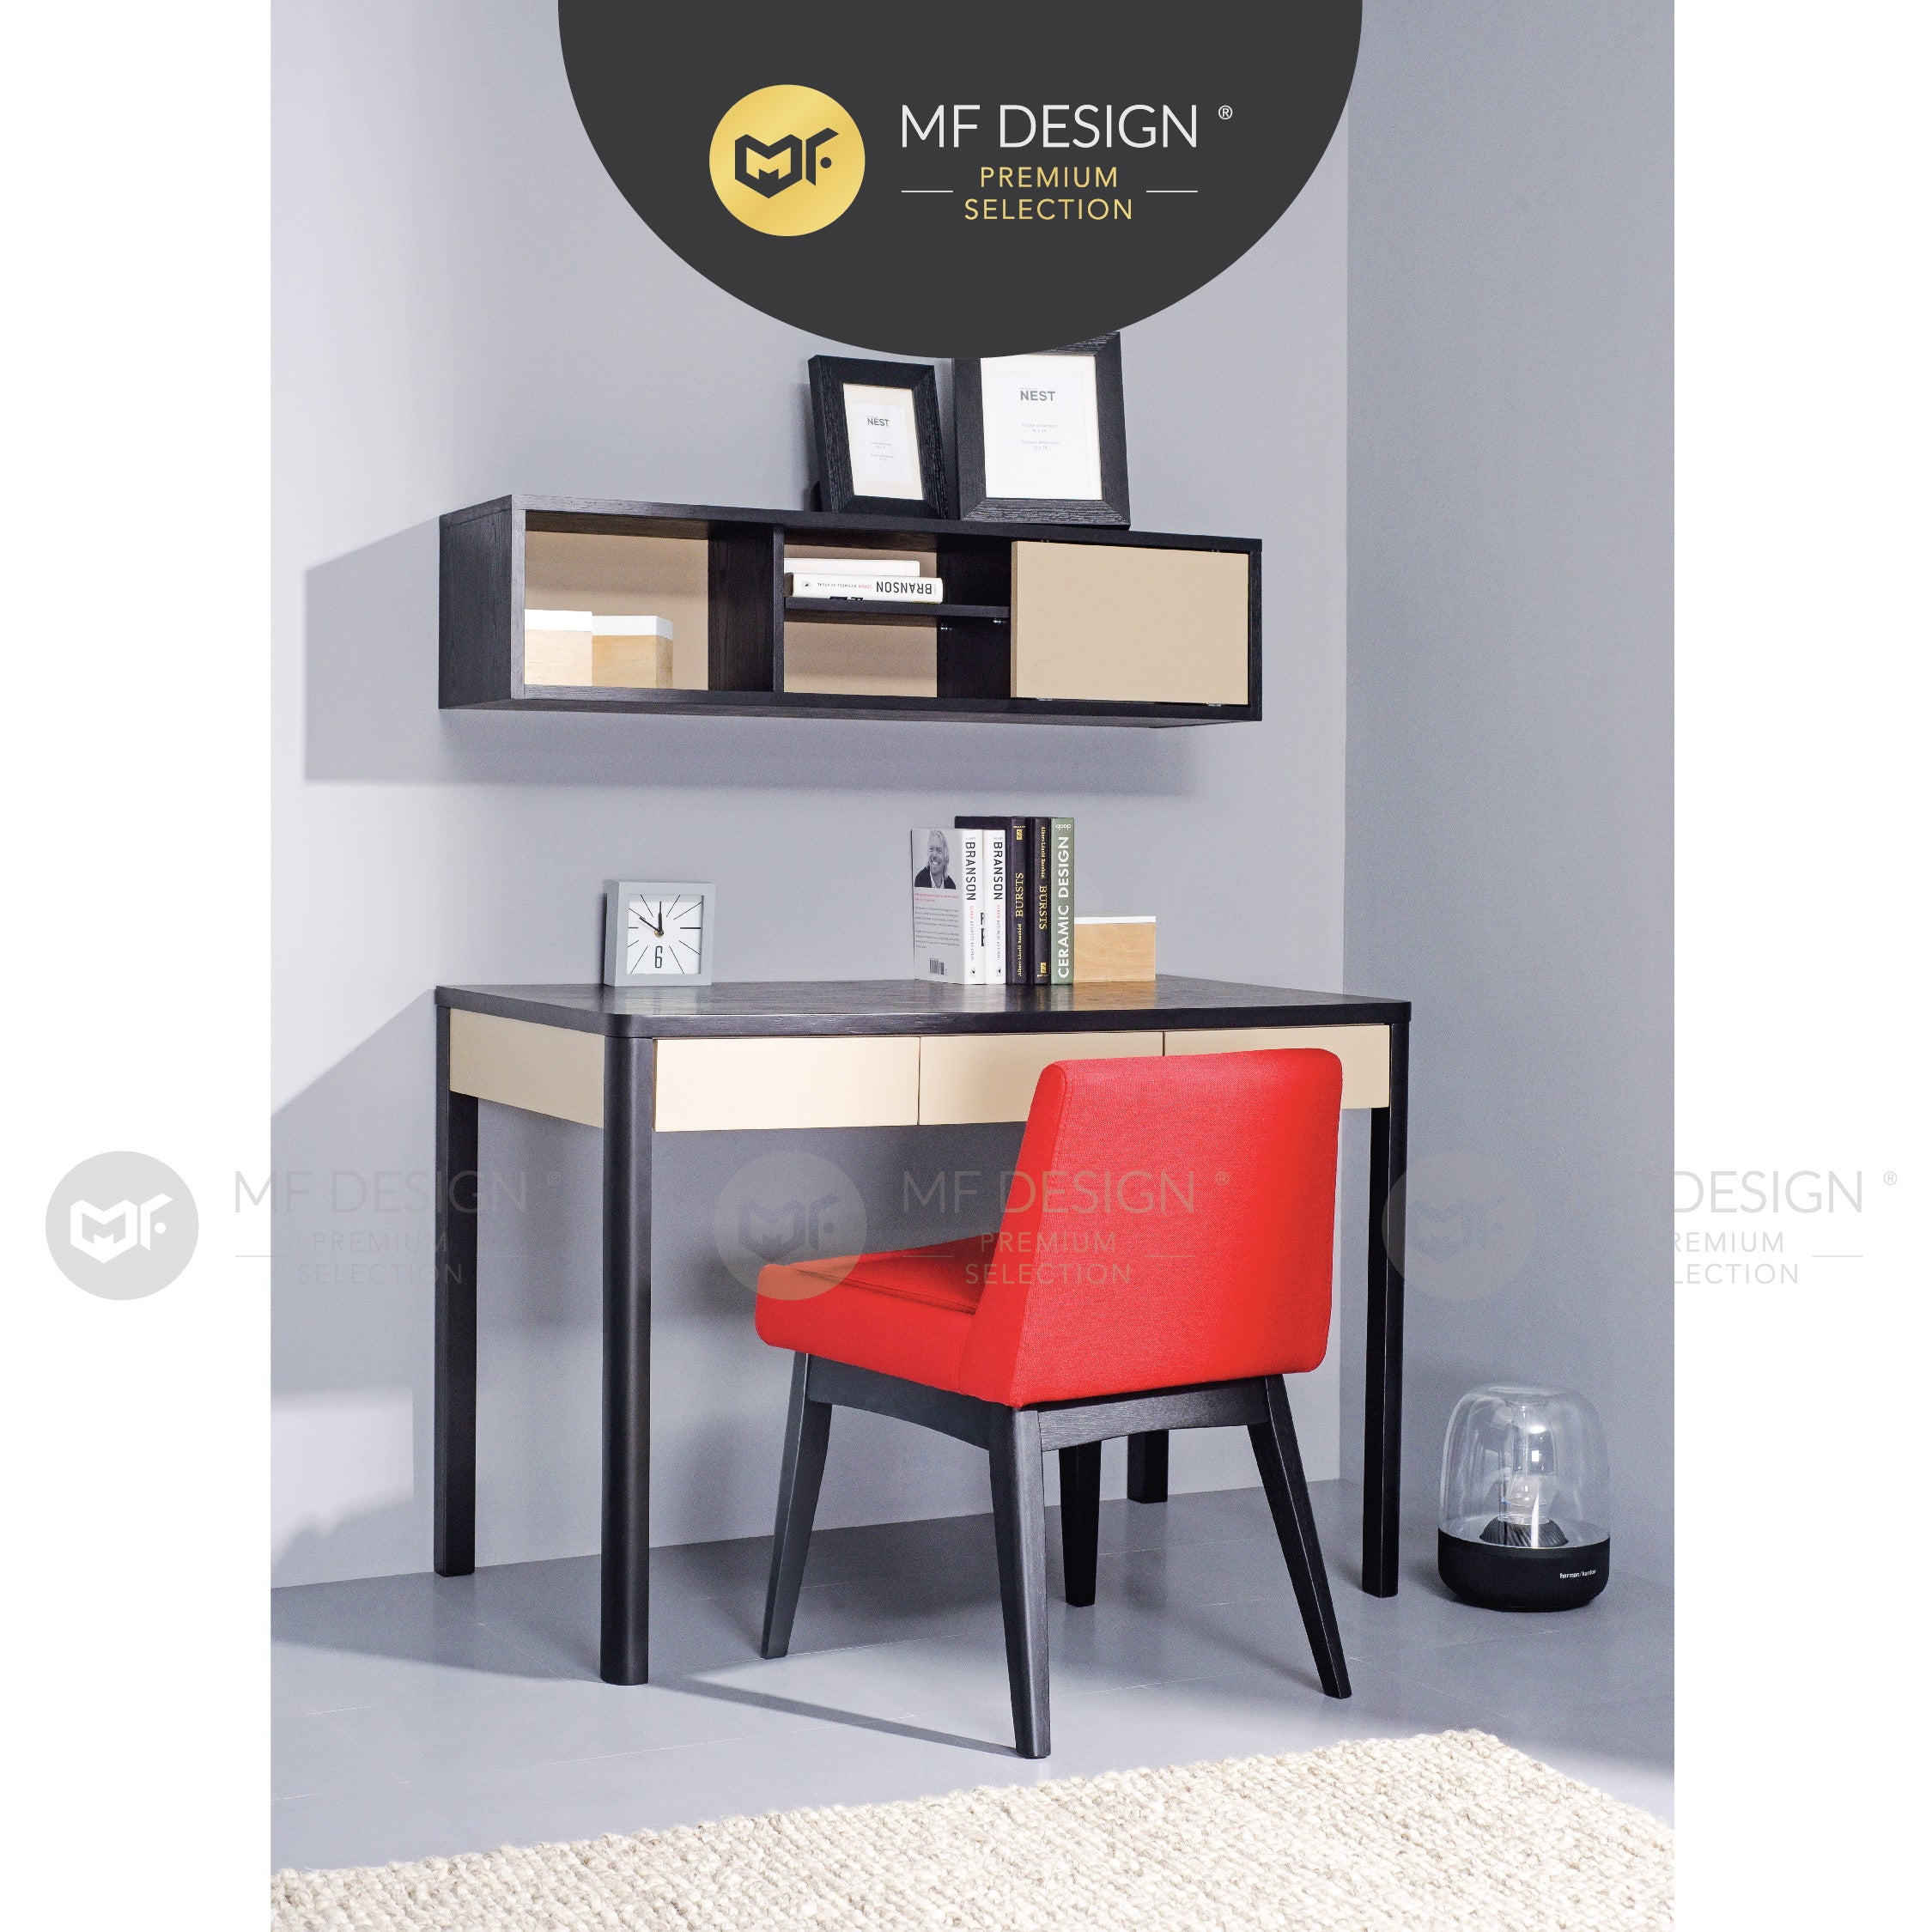 MFD Premium Caleb Dining Chair / Wooden Chair / Solid Rubber Wood / Kerusi Makan Kayu Getah / Living Room / Scandinavian